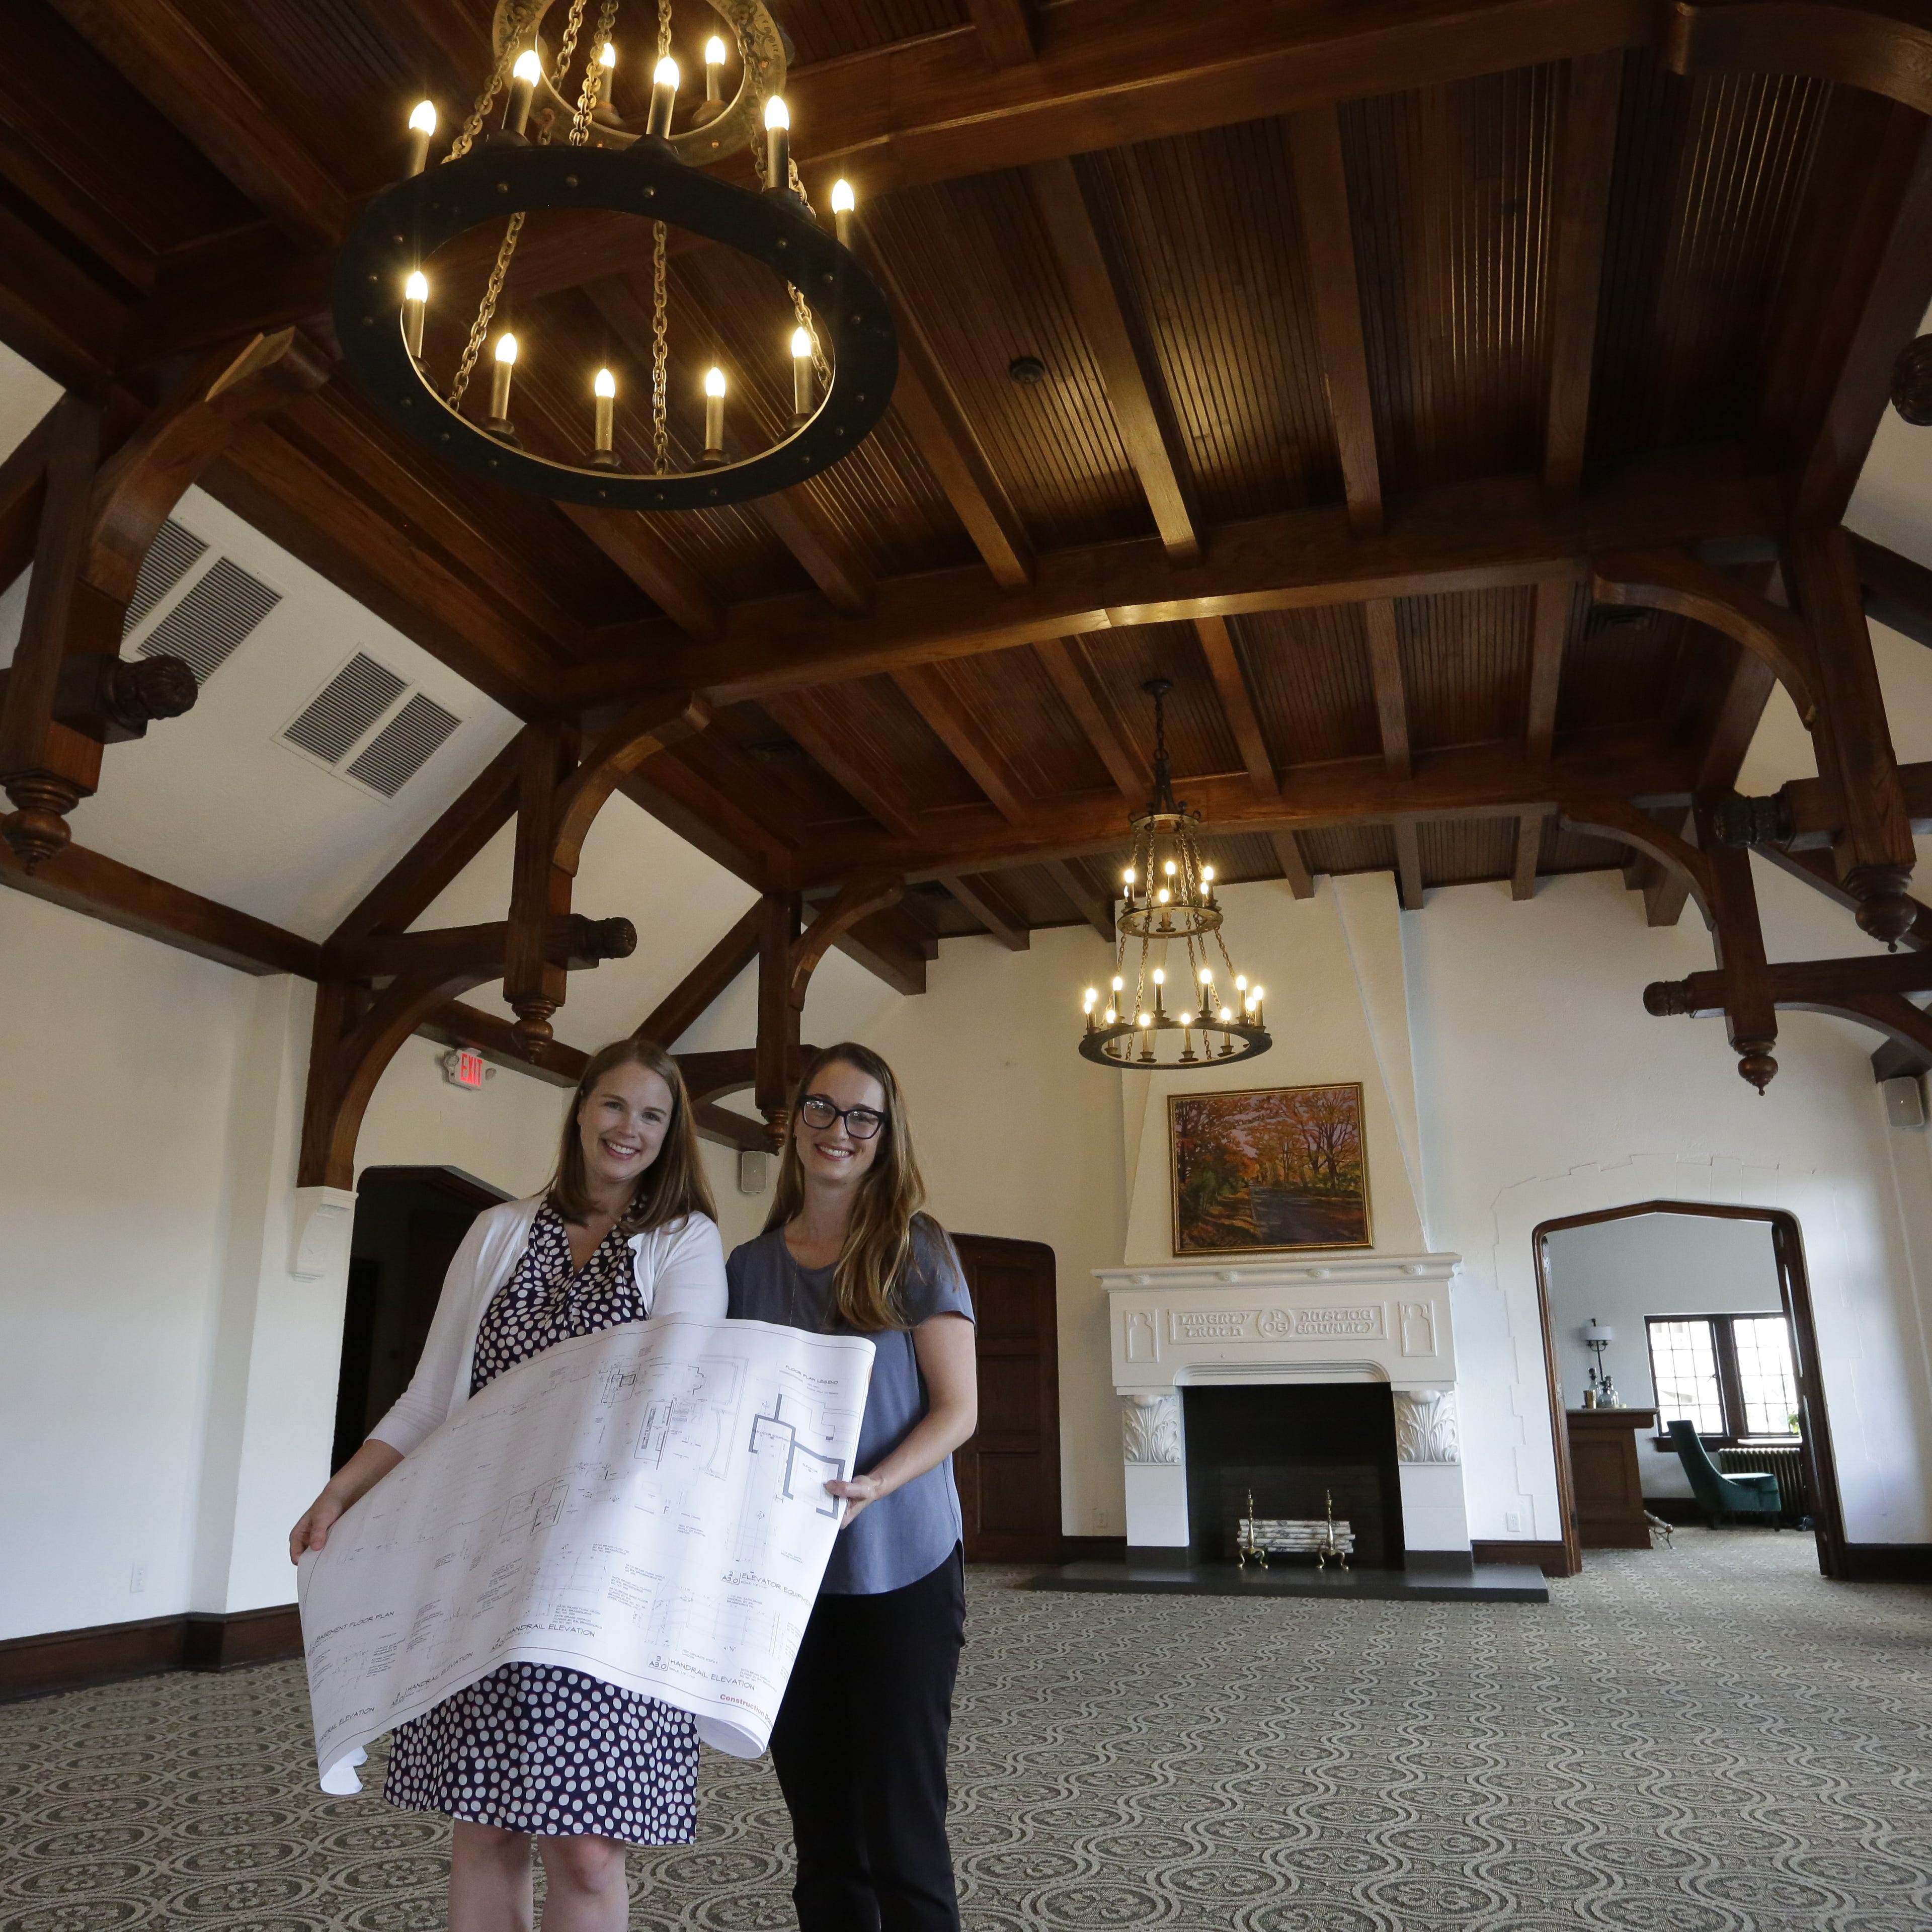 The Howard, Oshkosh's newest event space, to open Sept. 21 in former Eagle's Club building